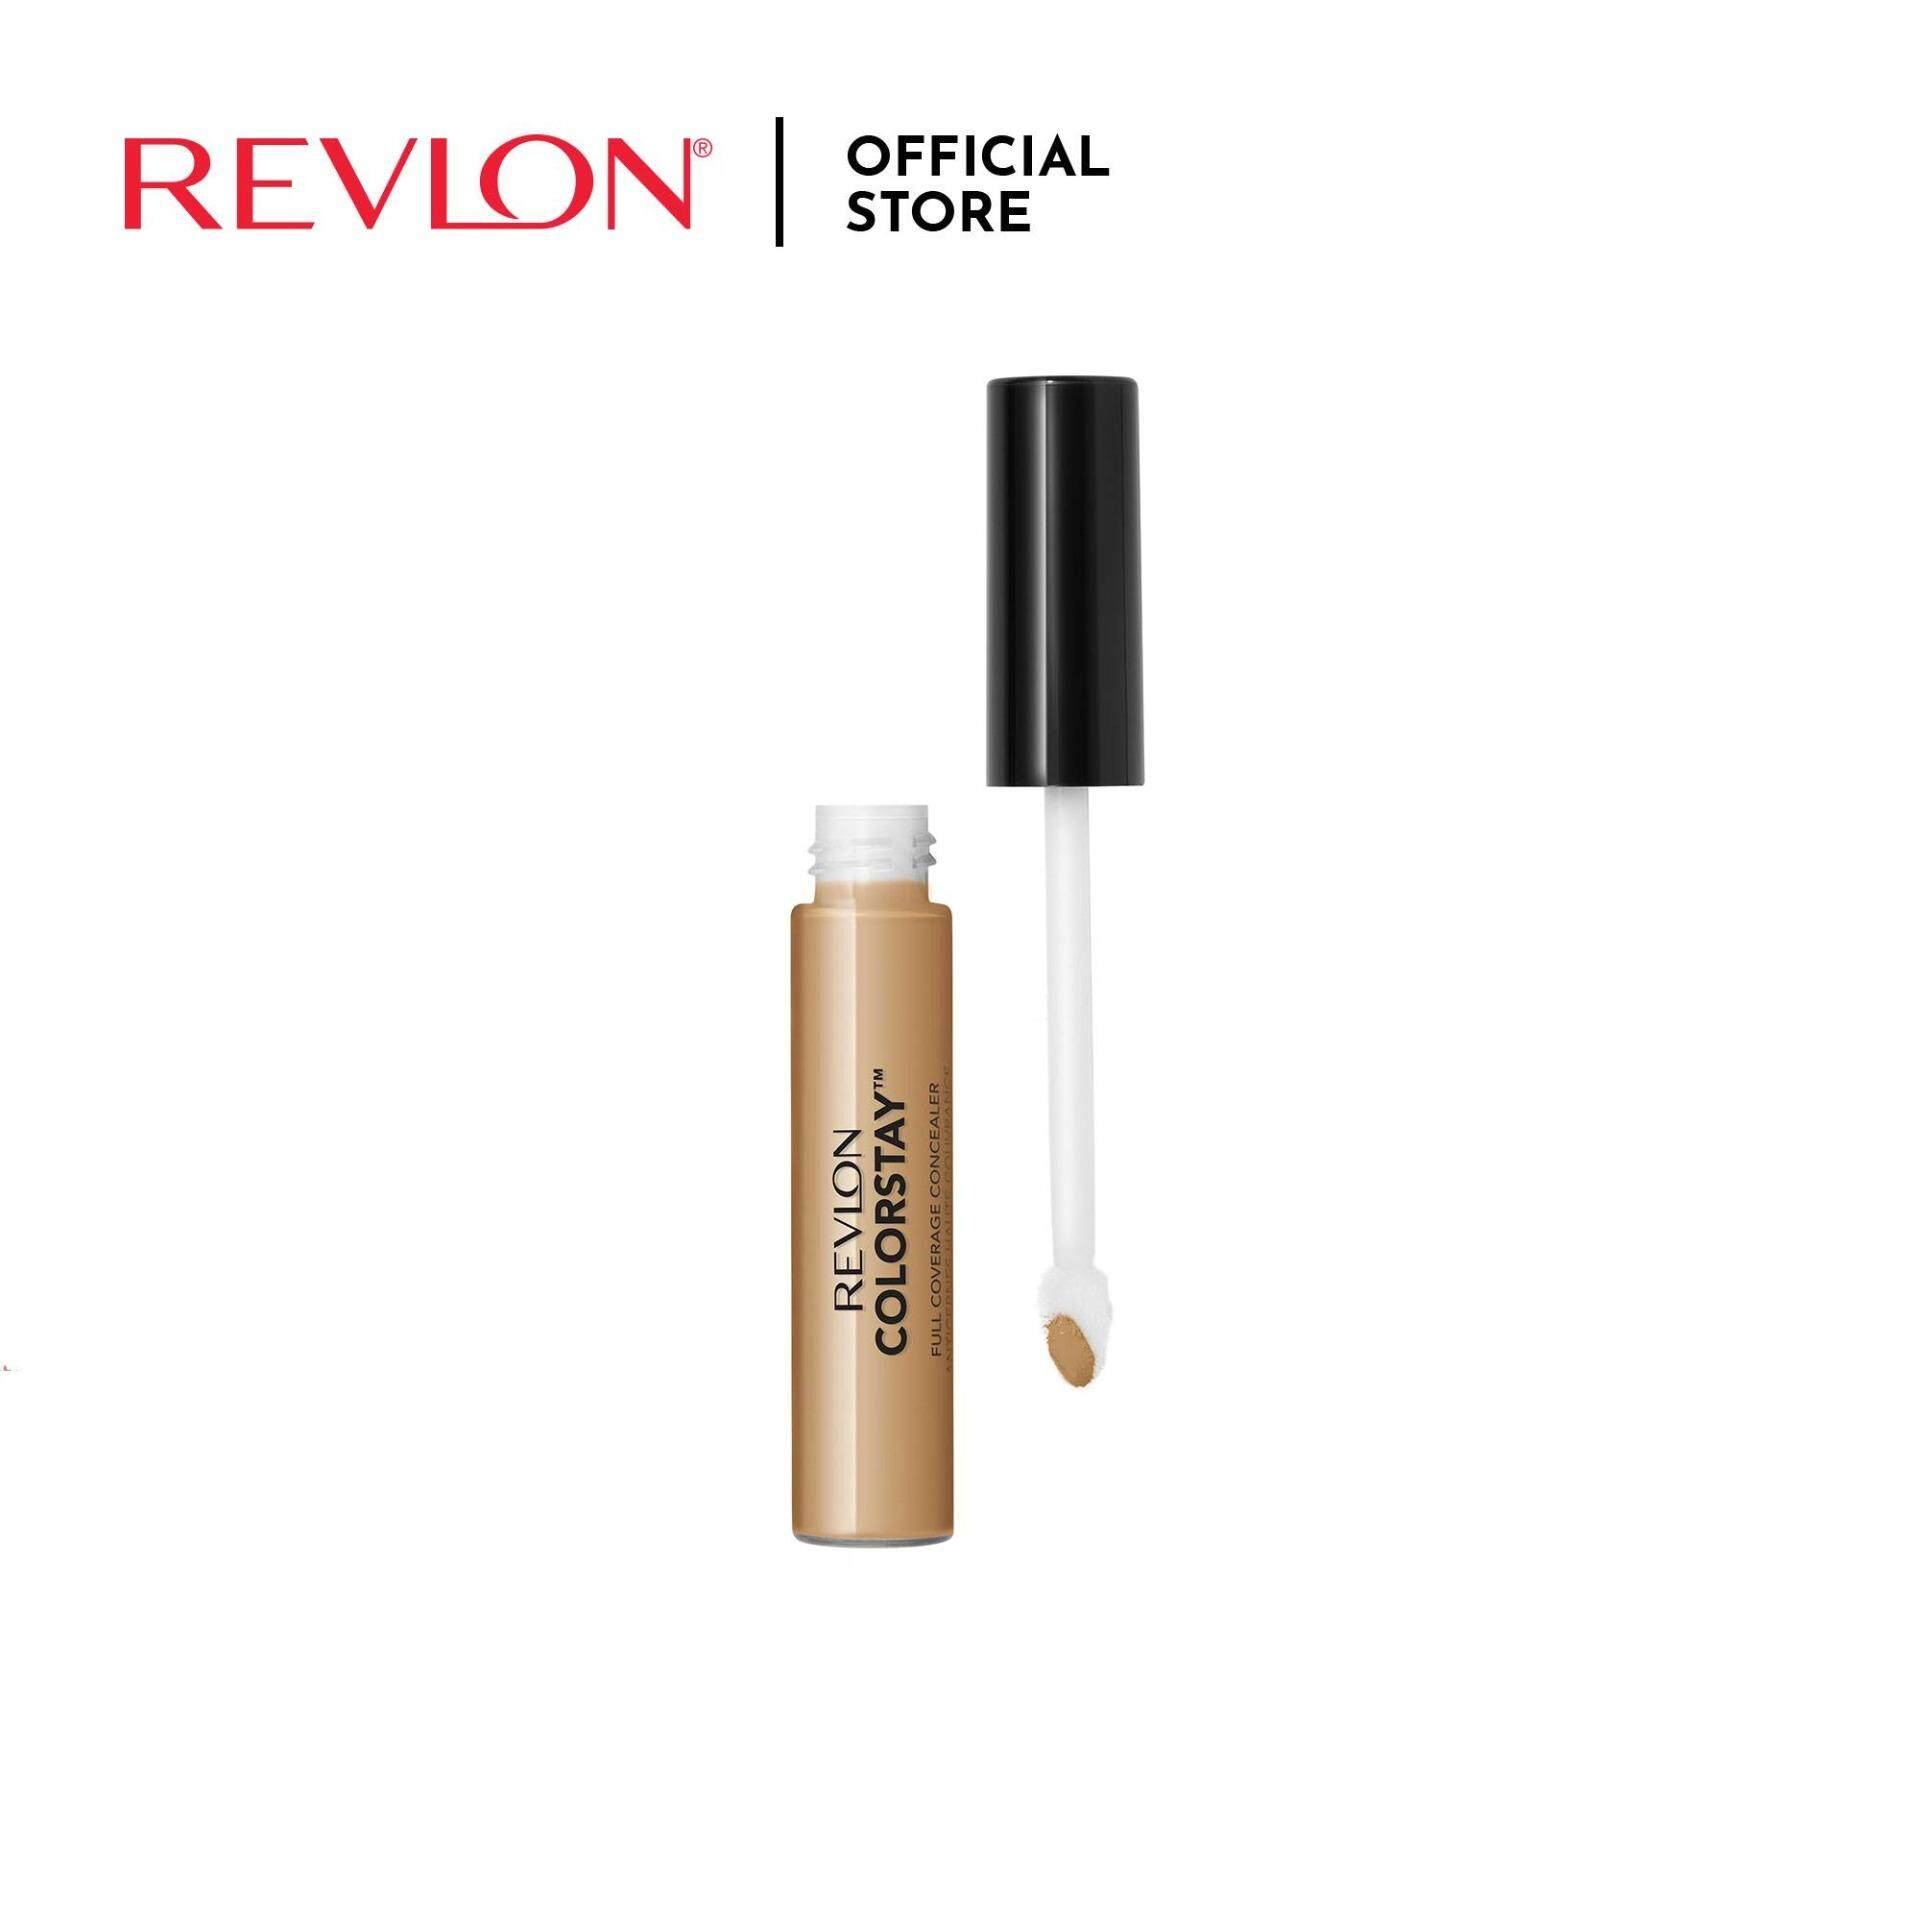 Revlon Colorstay Concealer -Medium Deep 05